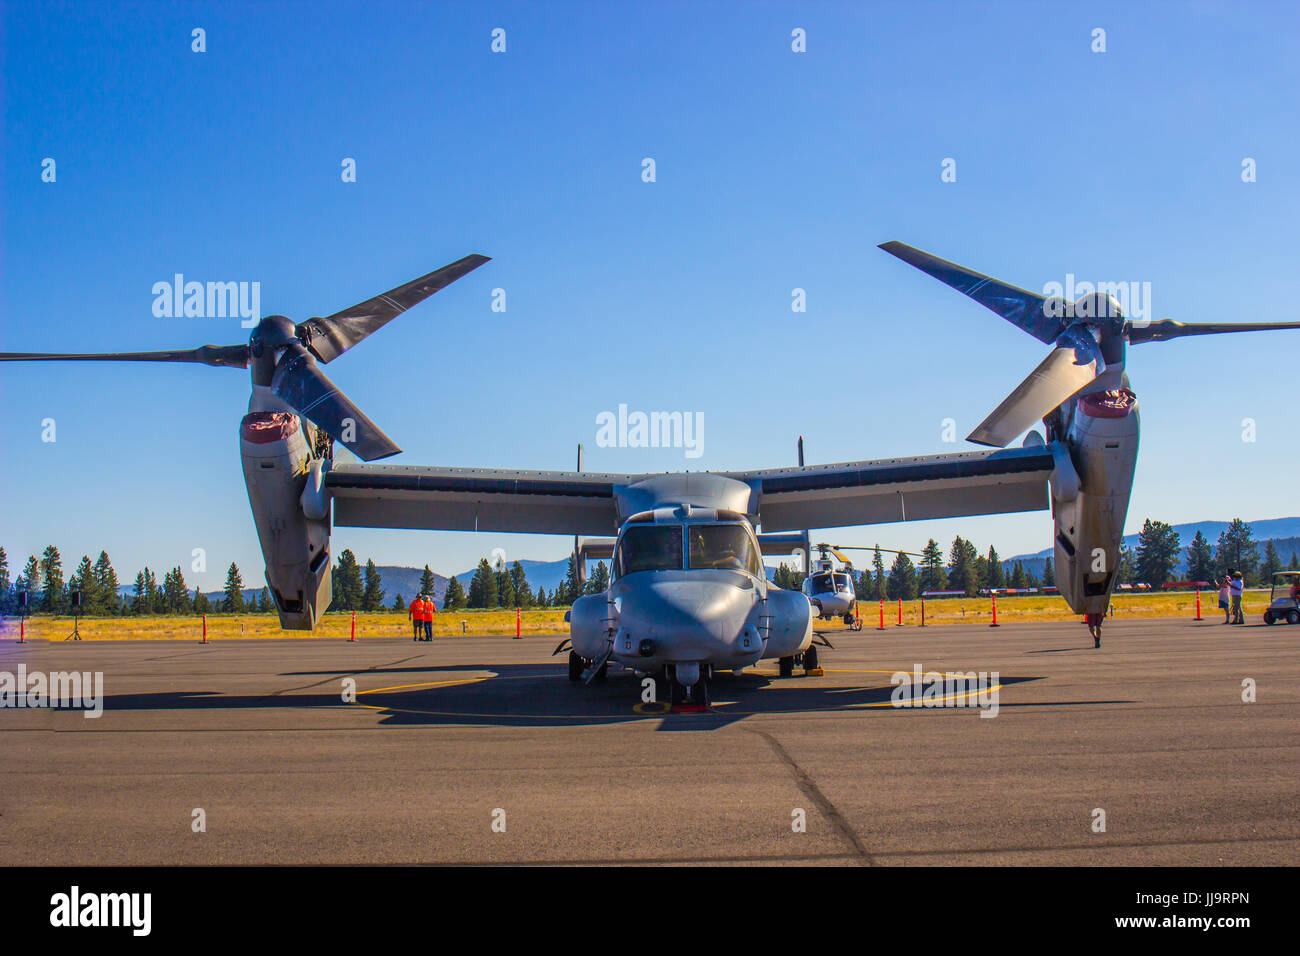 Adjustable Wings & Propellers On Cargo Plane - Stock Image